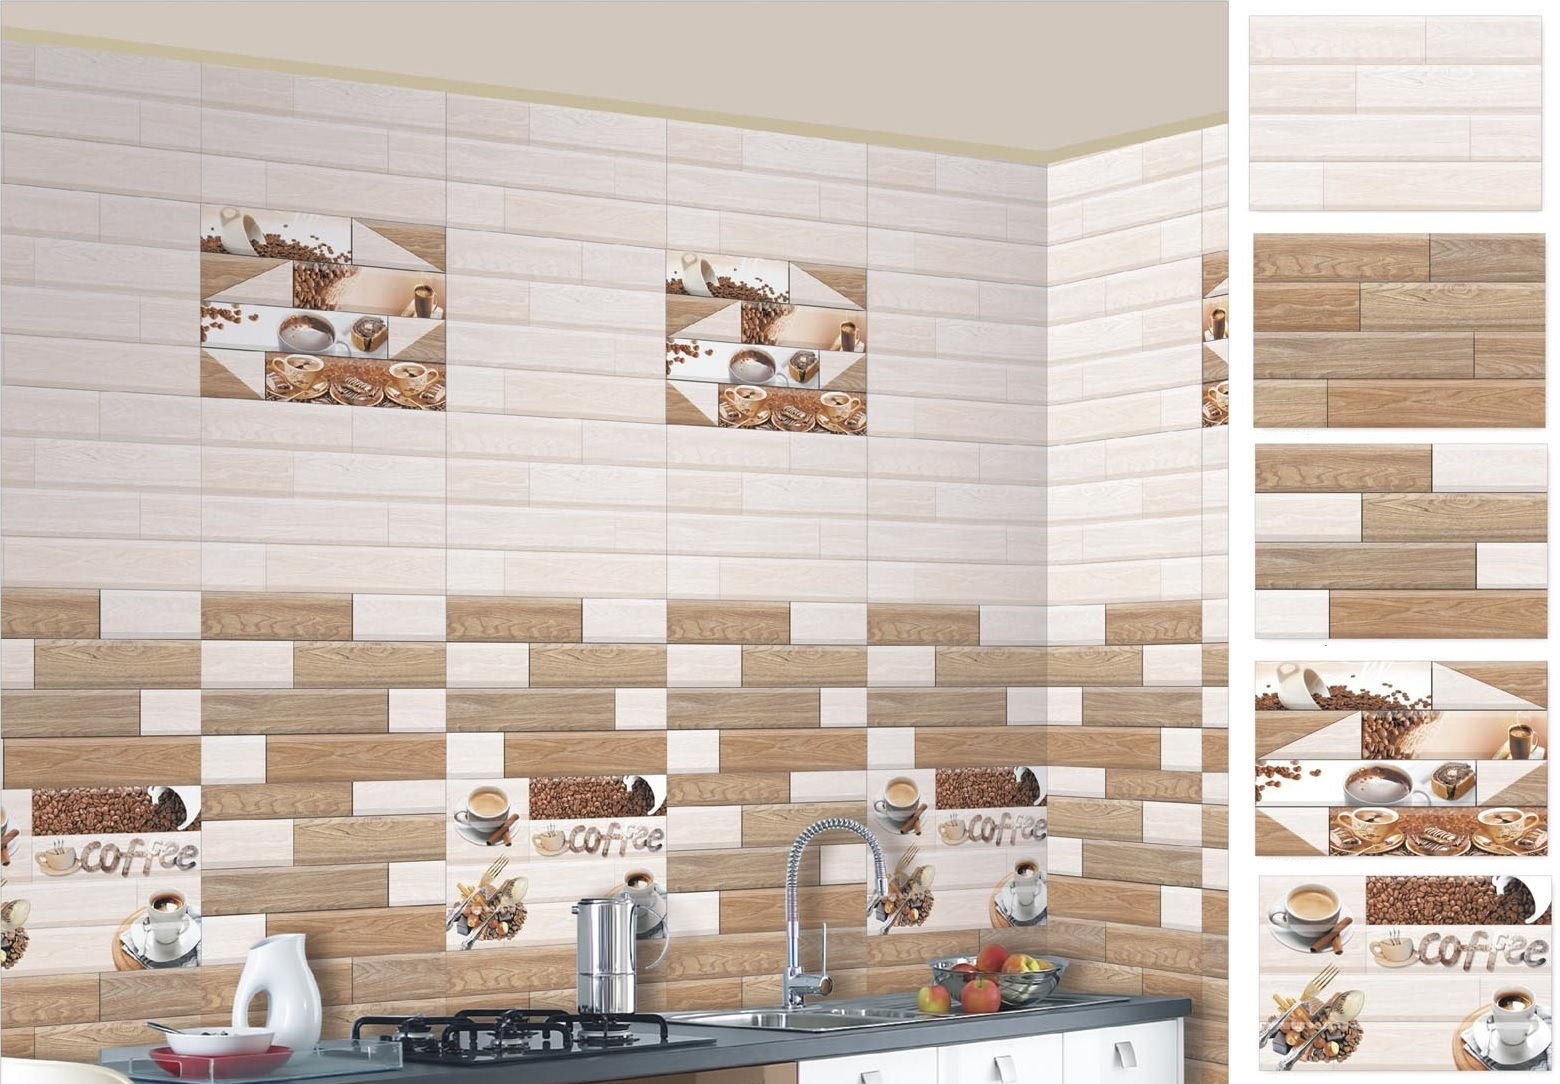 Wall Tiles Design For Home : Kitchen wall tiles ideas with images